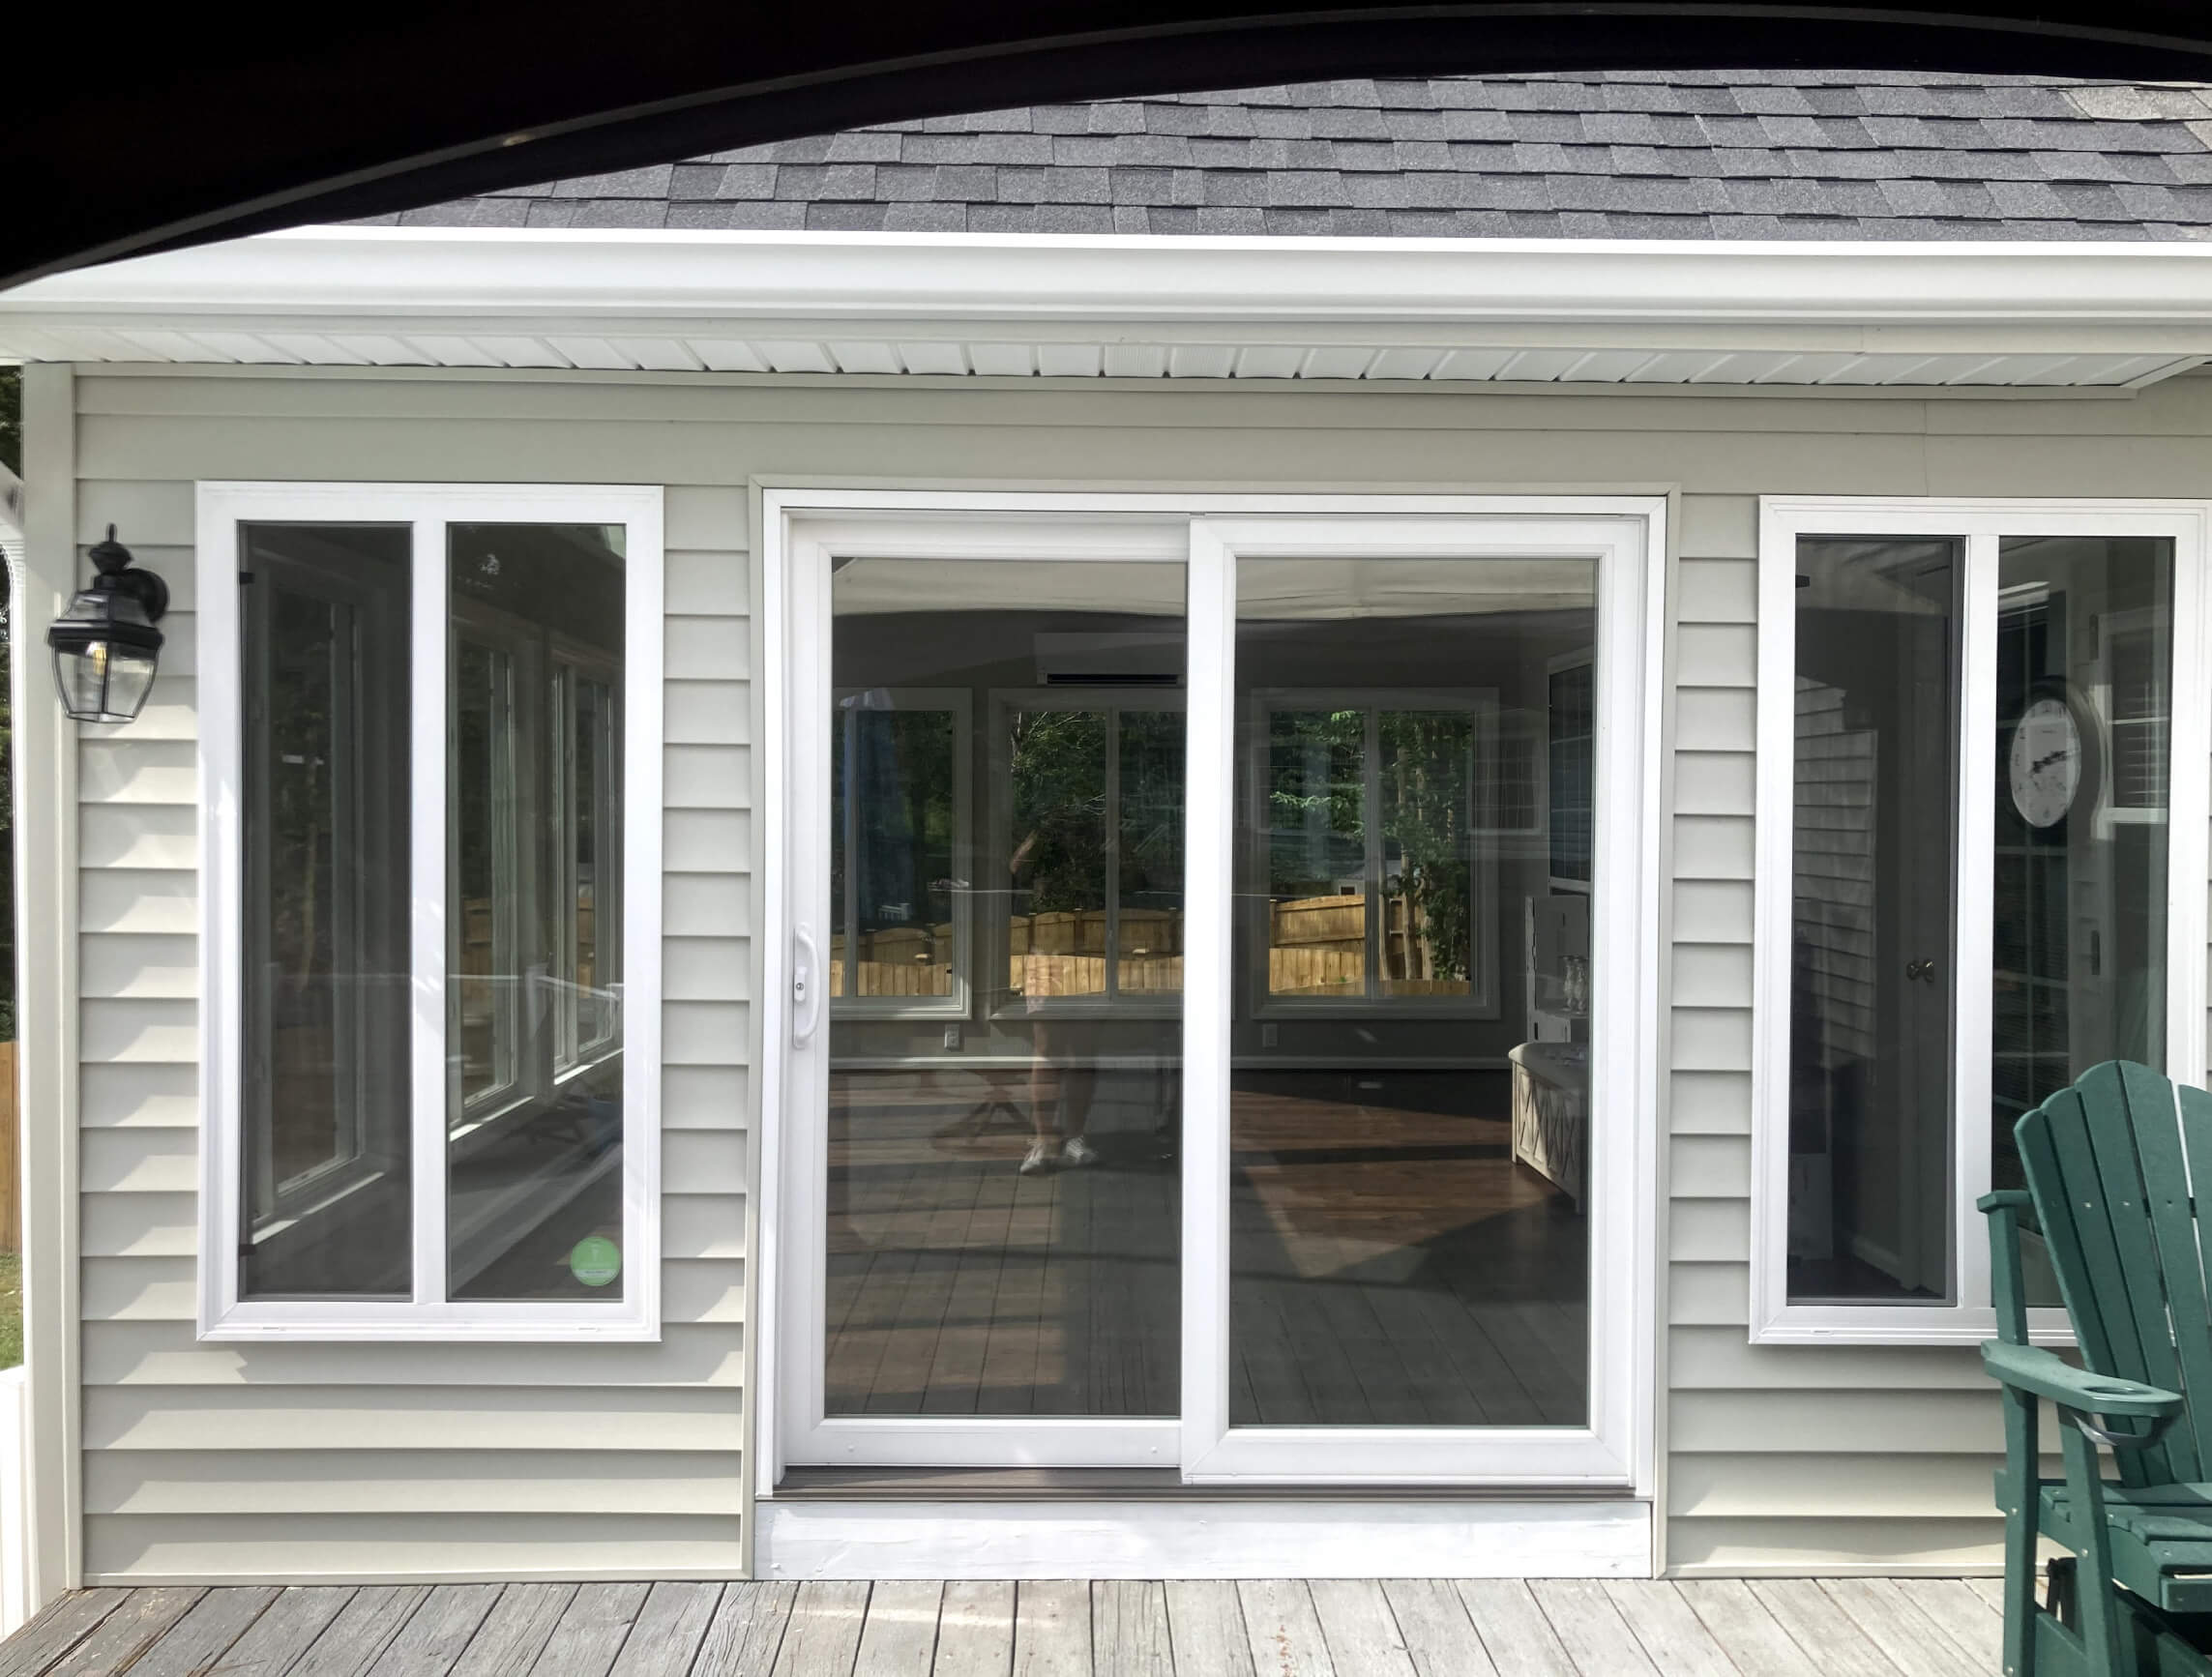 Exterior view of sunroom